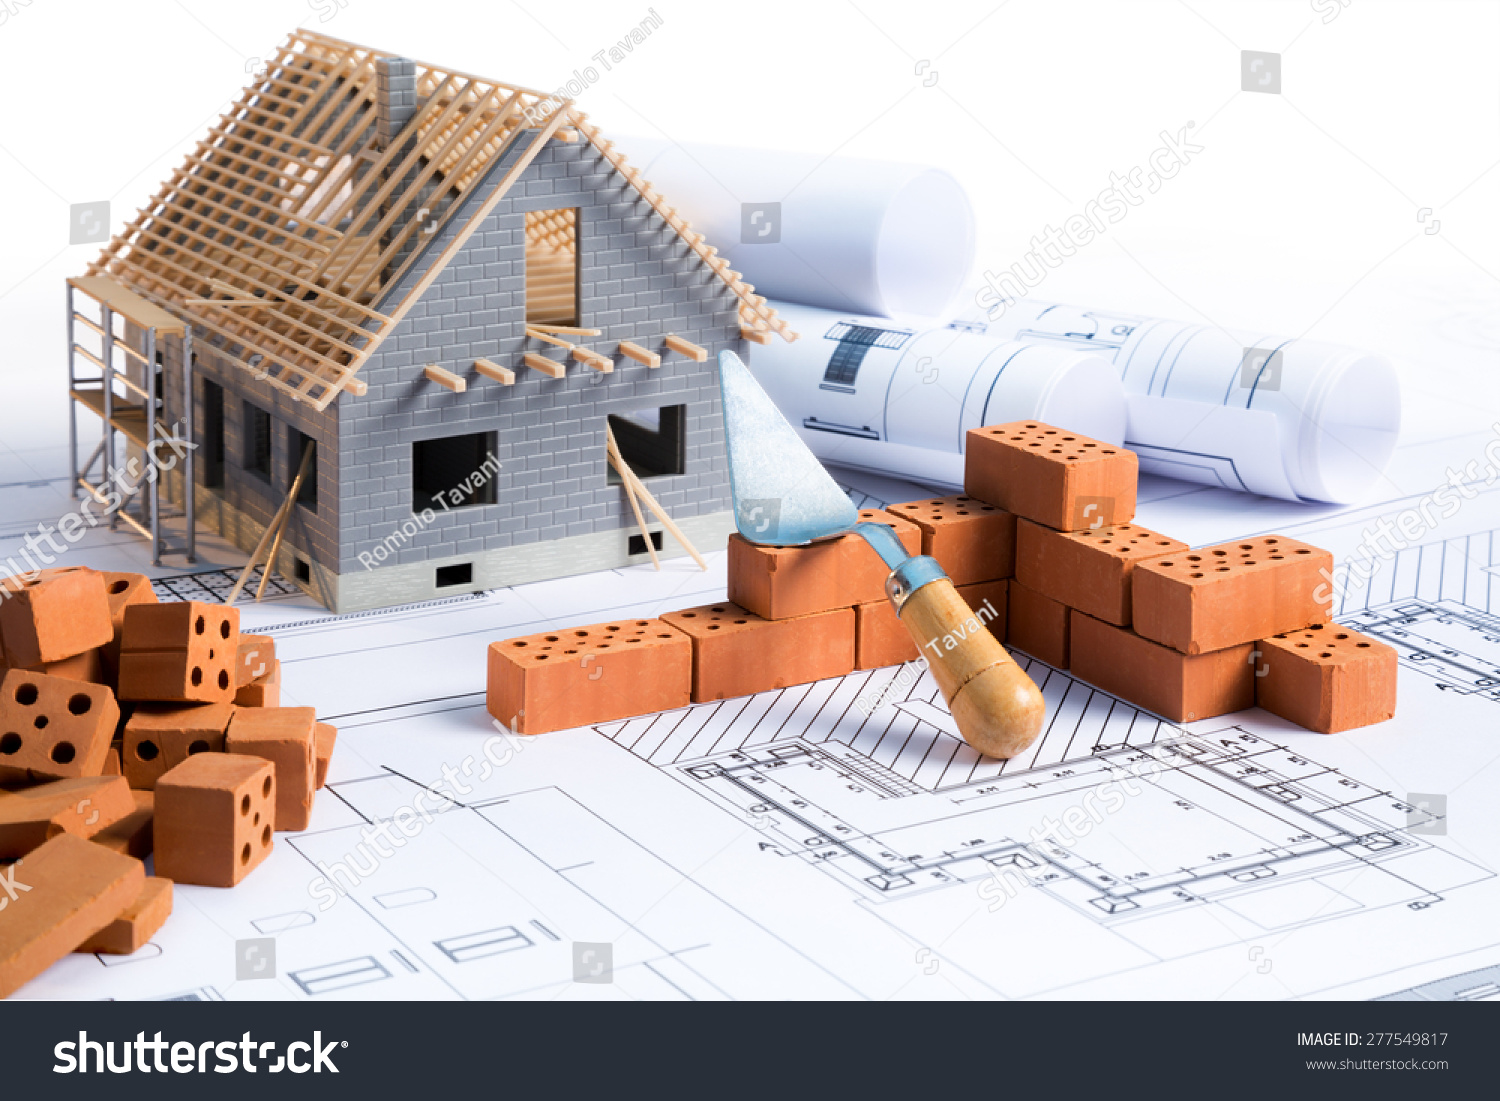 Project on construction of house